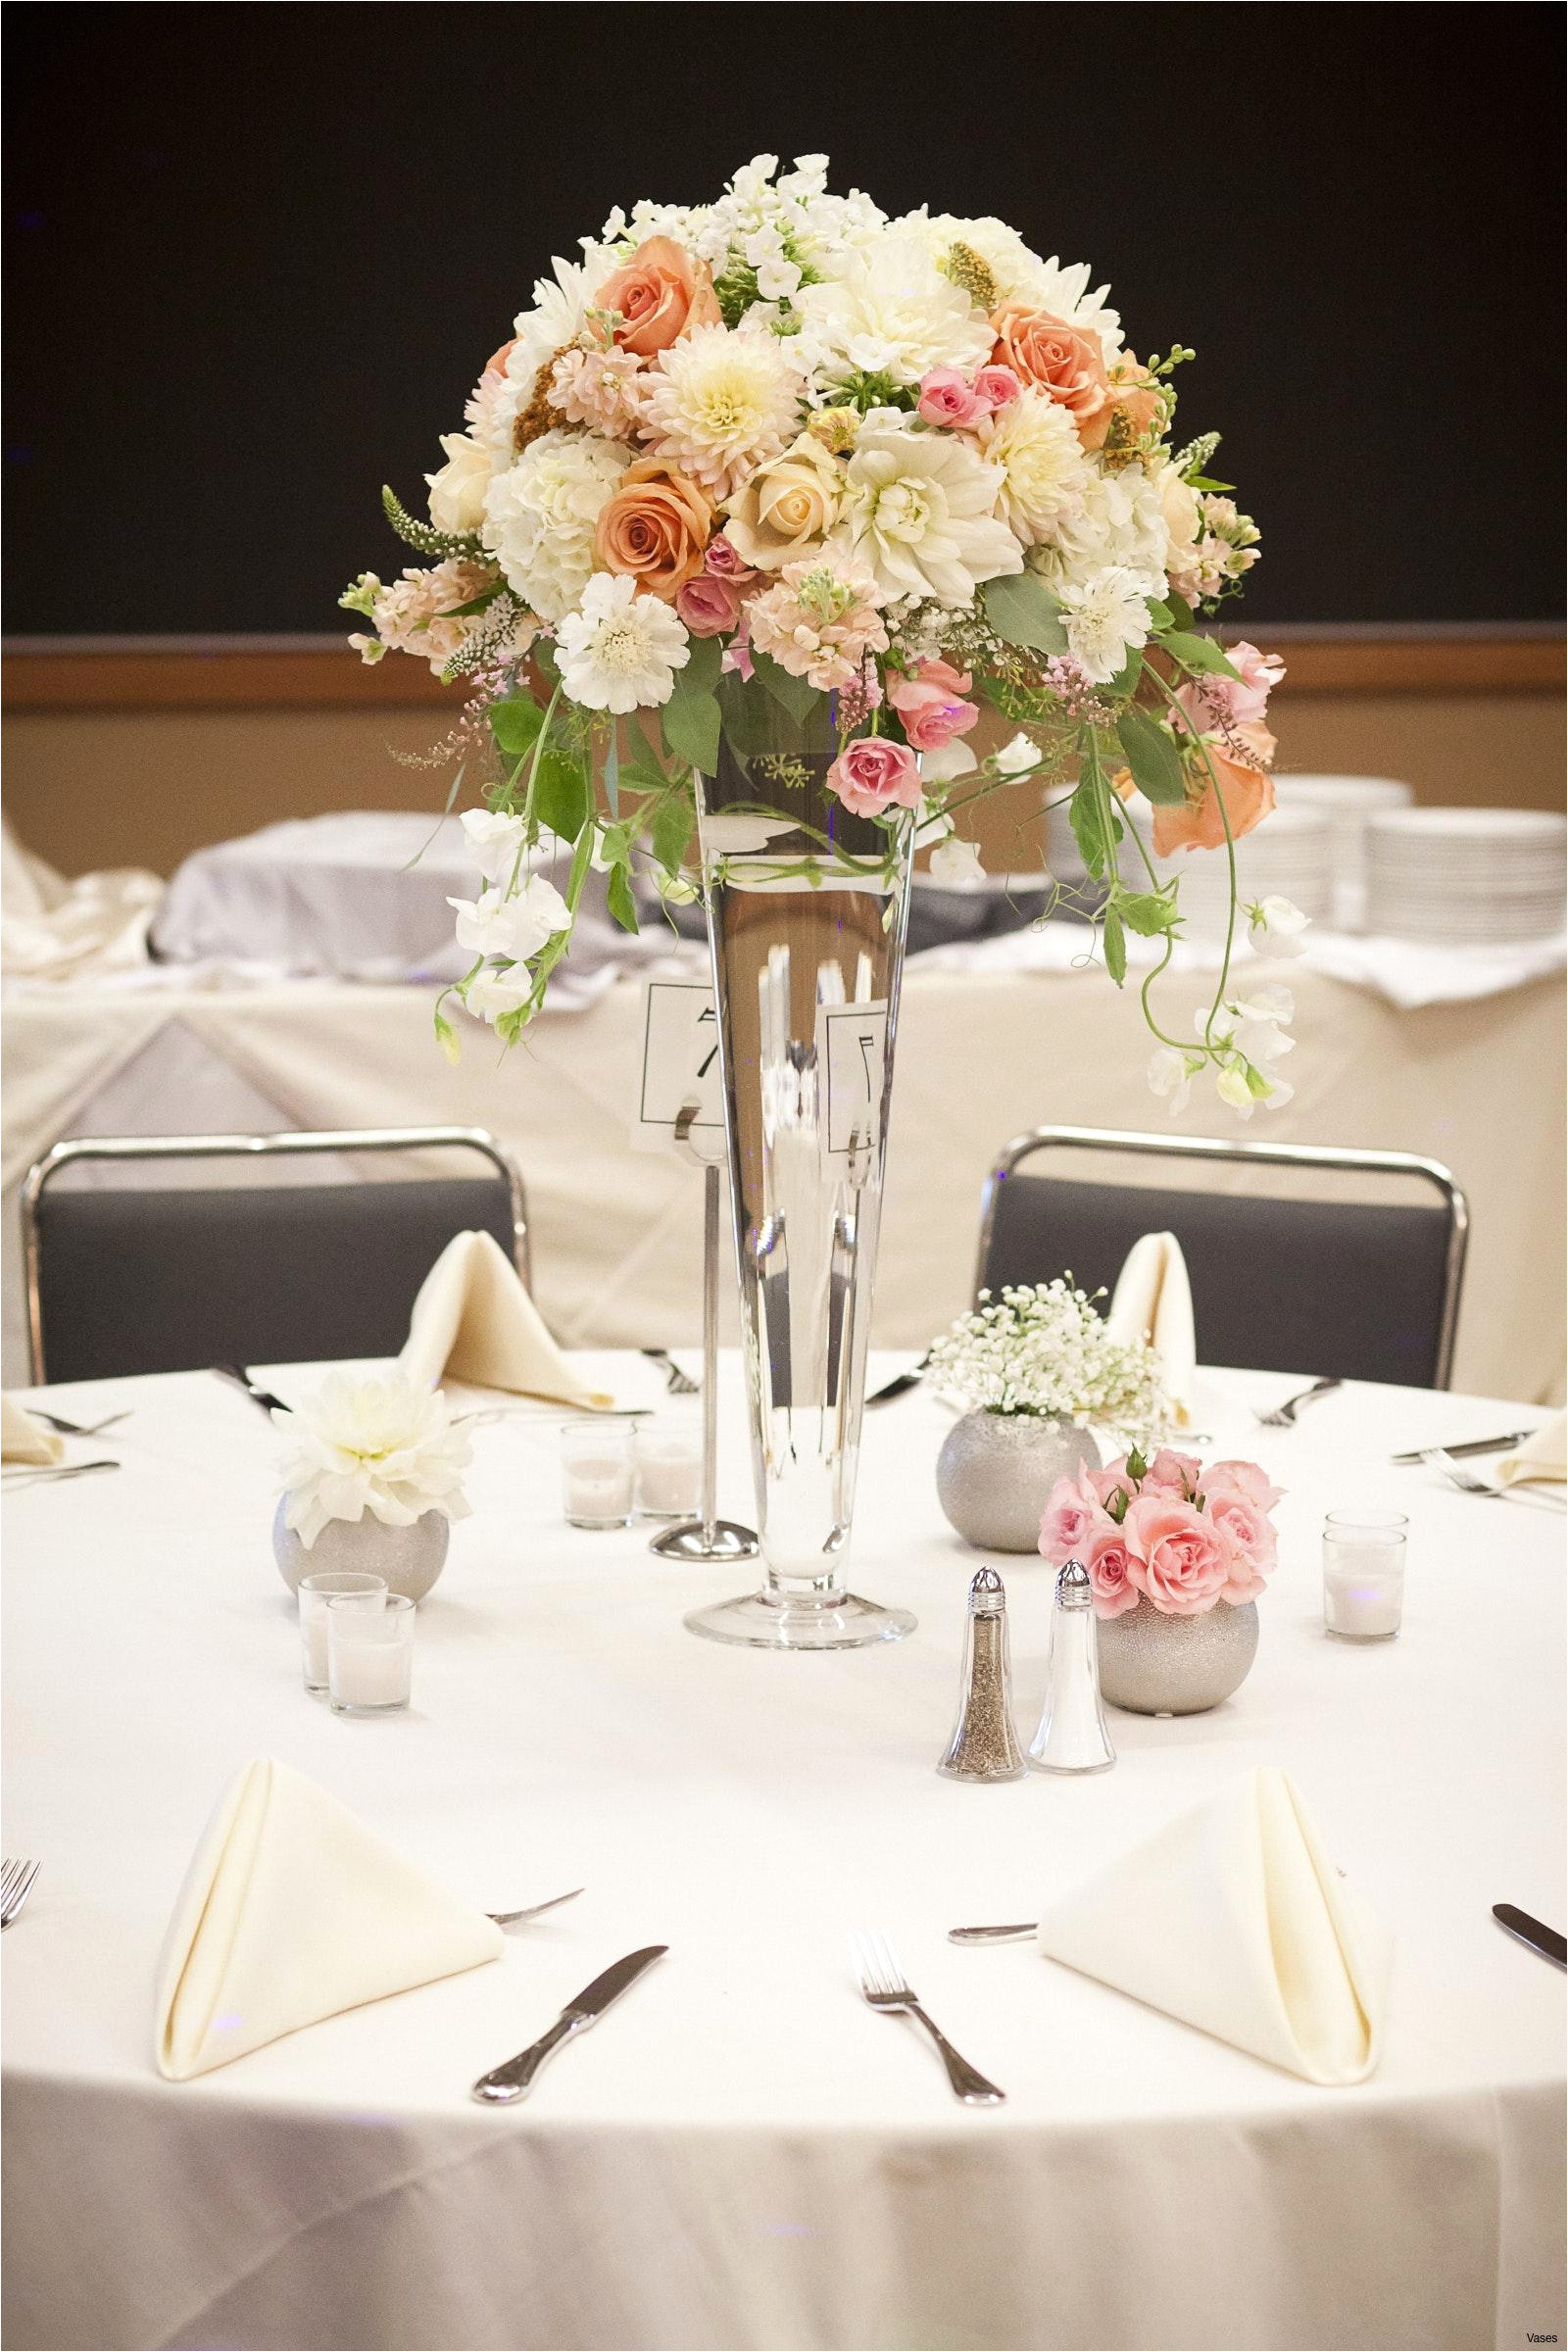 picture decoration ideas best of flower quinceanera decorations beautiful living room vases wedding photograph